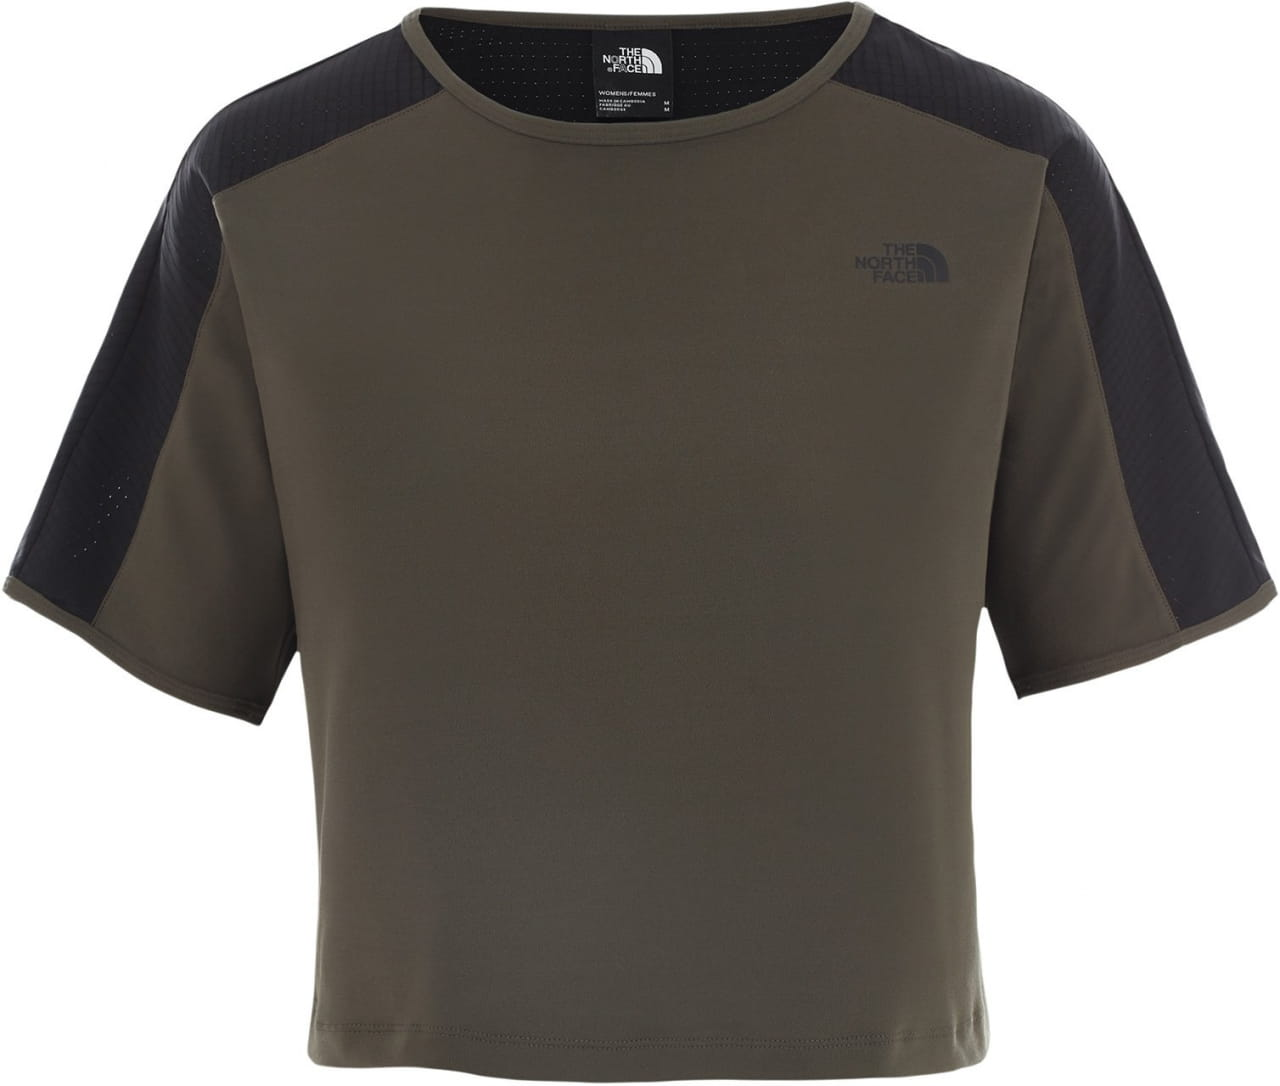 T-Shirts The North Face Women's Active Trail T-Shirt